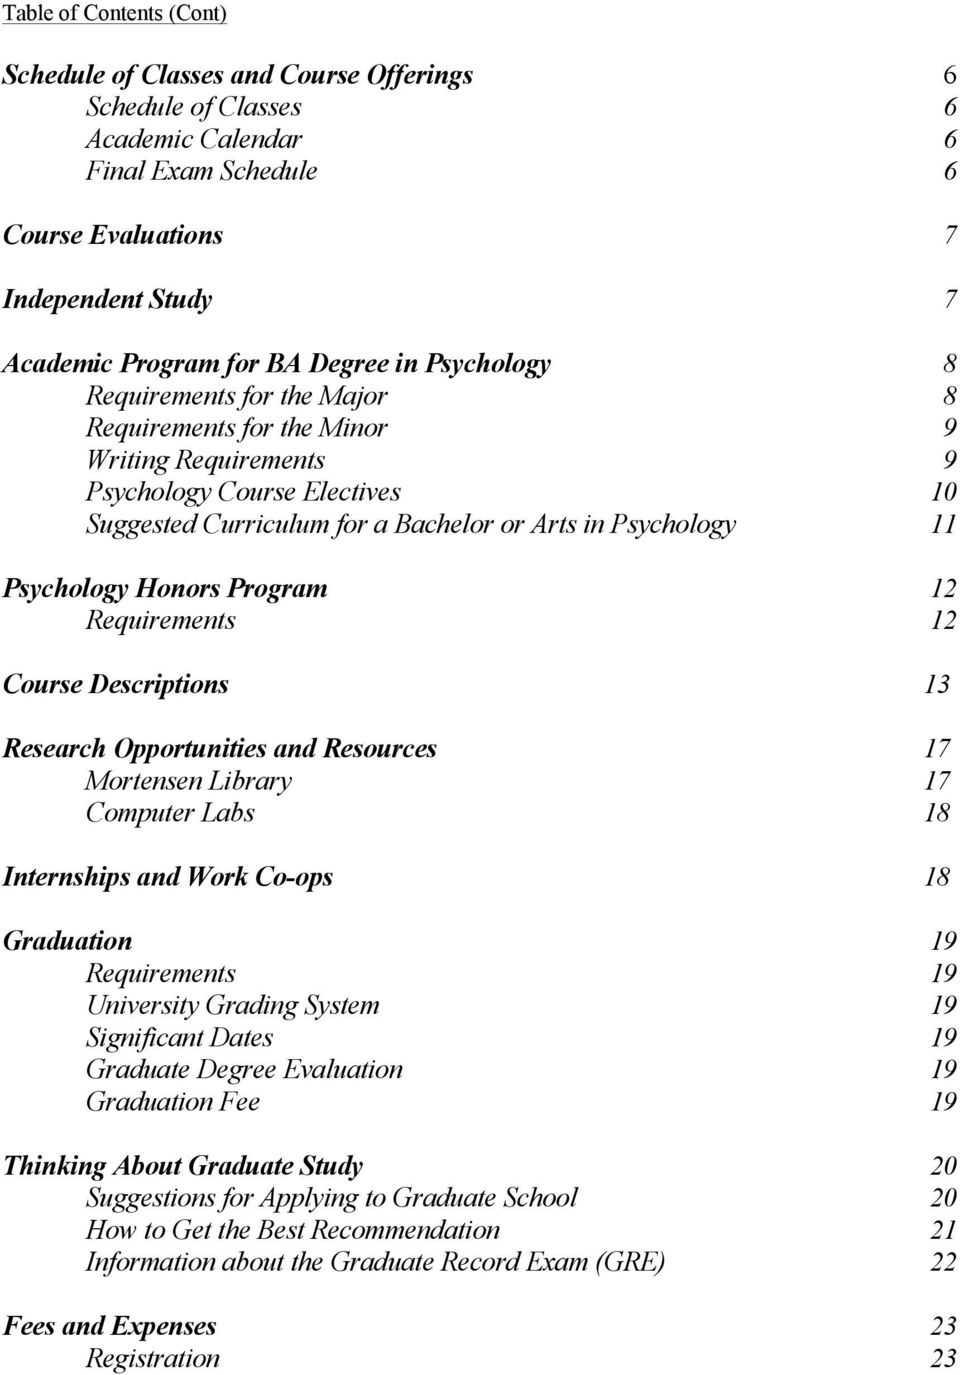 Psychology Honors Program 12 Requirements 12 Course Descriptions 13 Research Opportunities and Resources 17 Mortensen Library 17 Computer Labs 18 Internships and Work Co-ops 18 Graduation 19